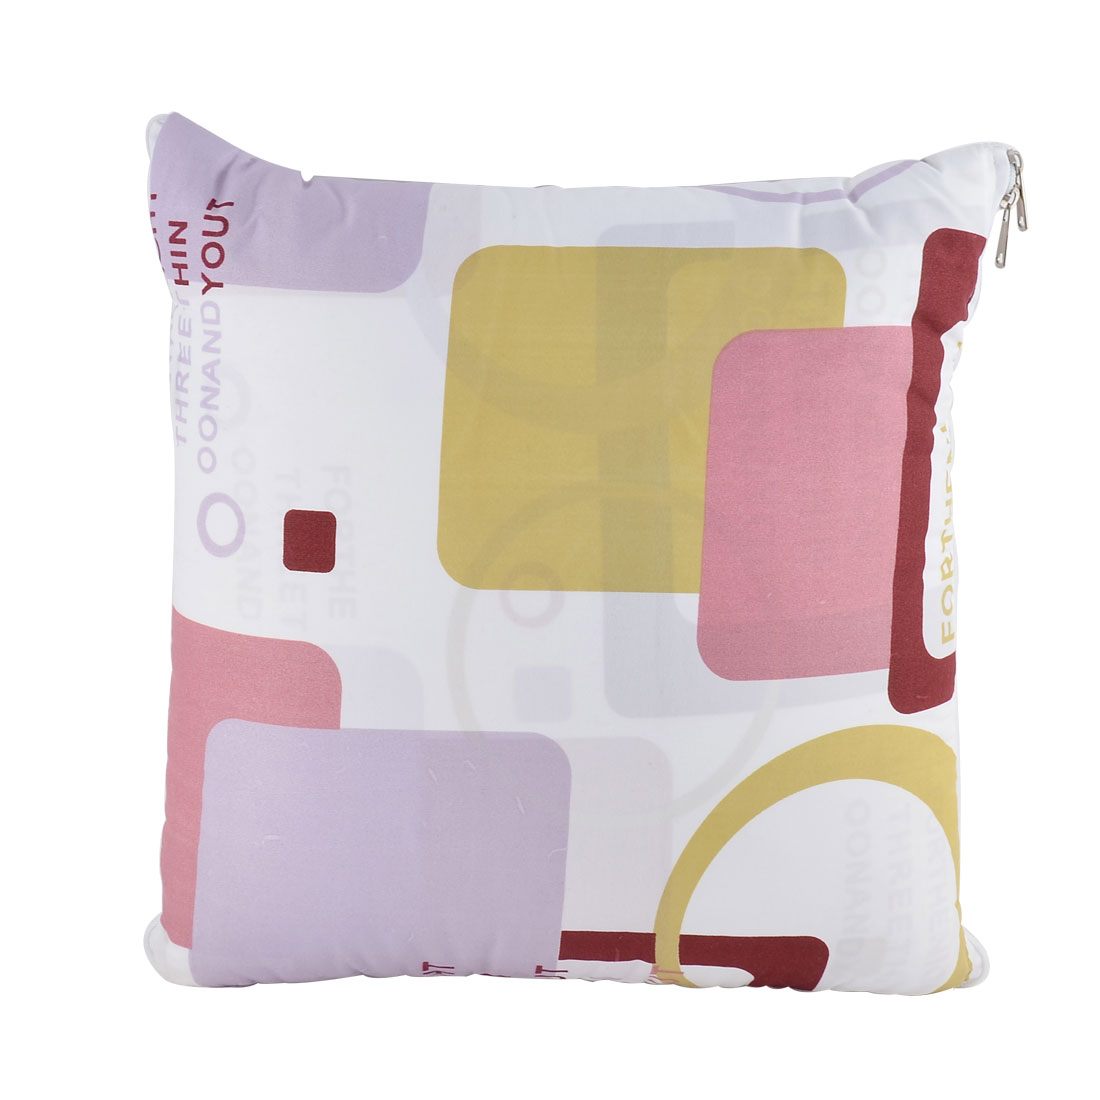 Home Office Car Cotton Blends Graph Print Zippered Pillow Cushion Quilt Dual 40 x 40cm